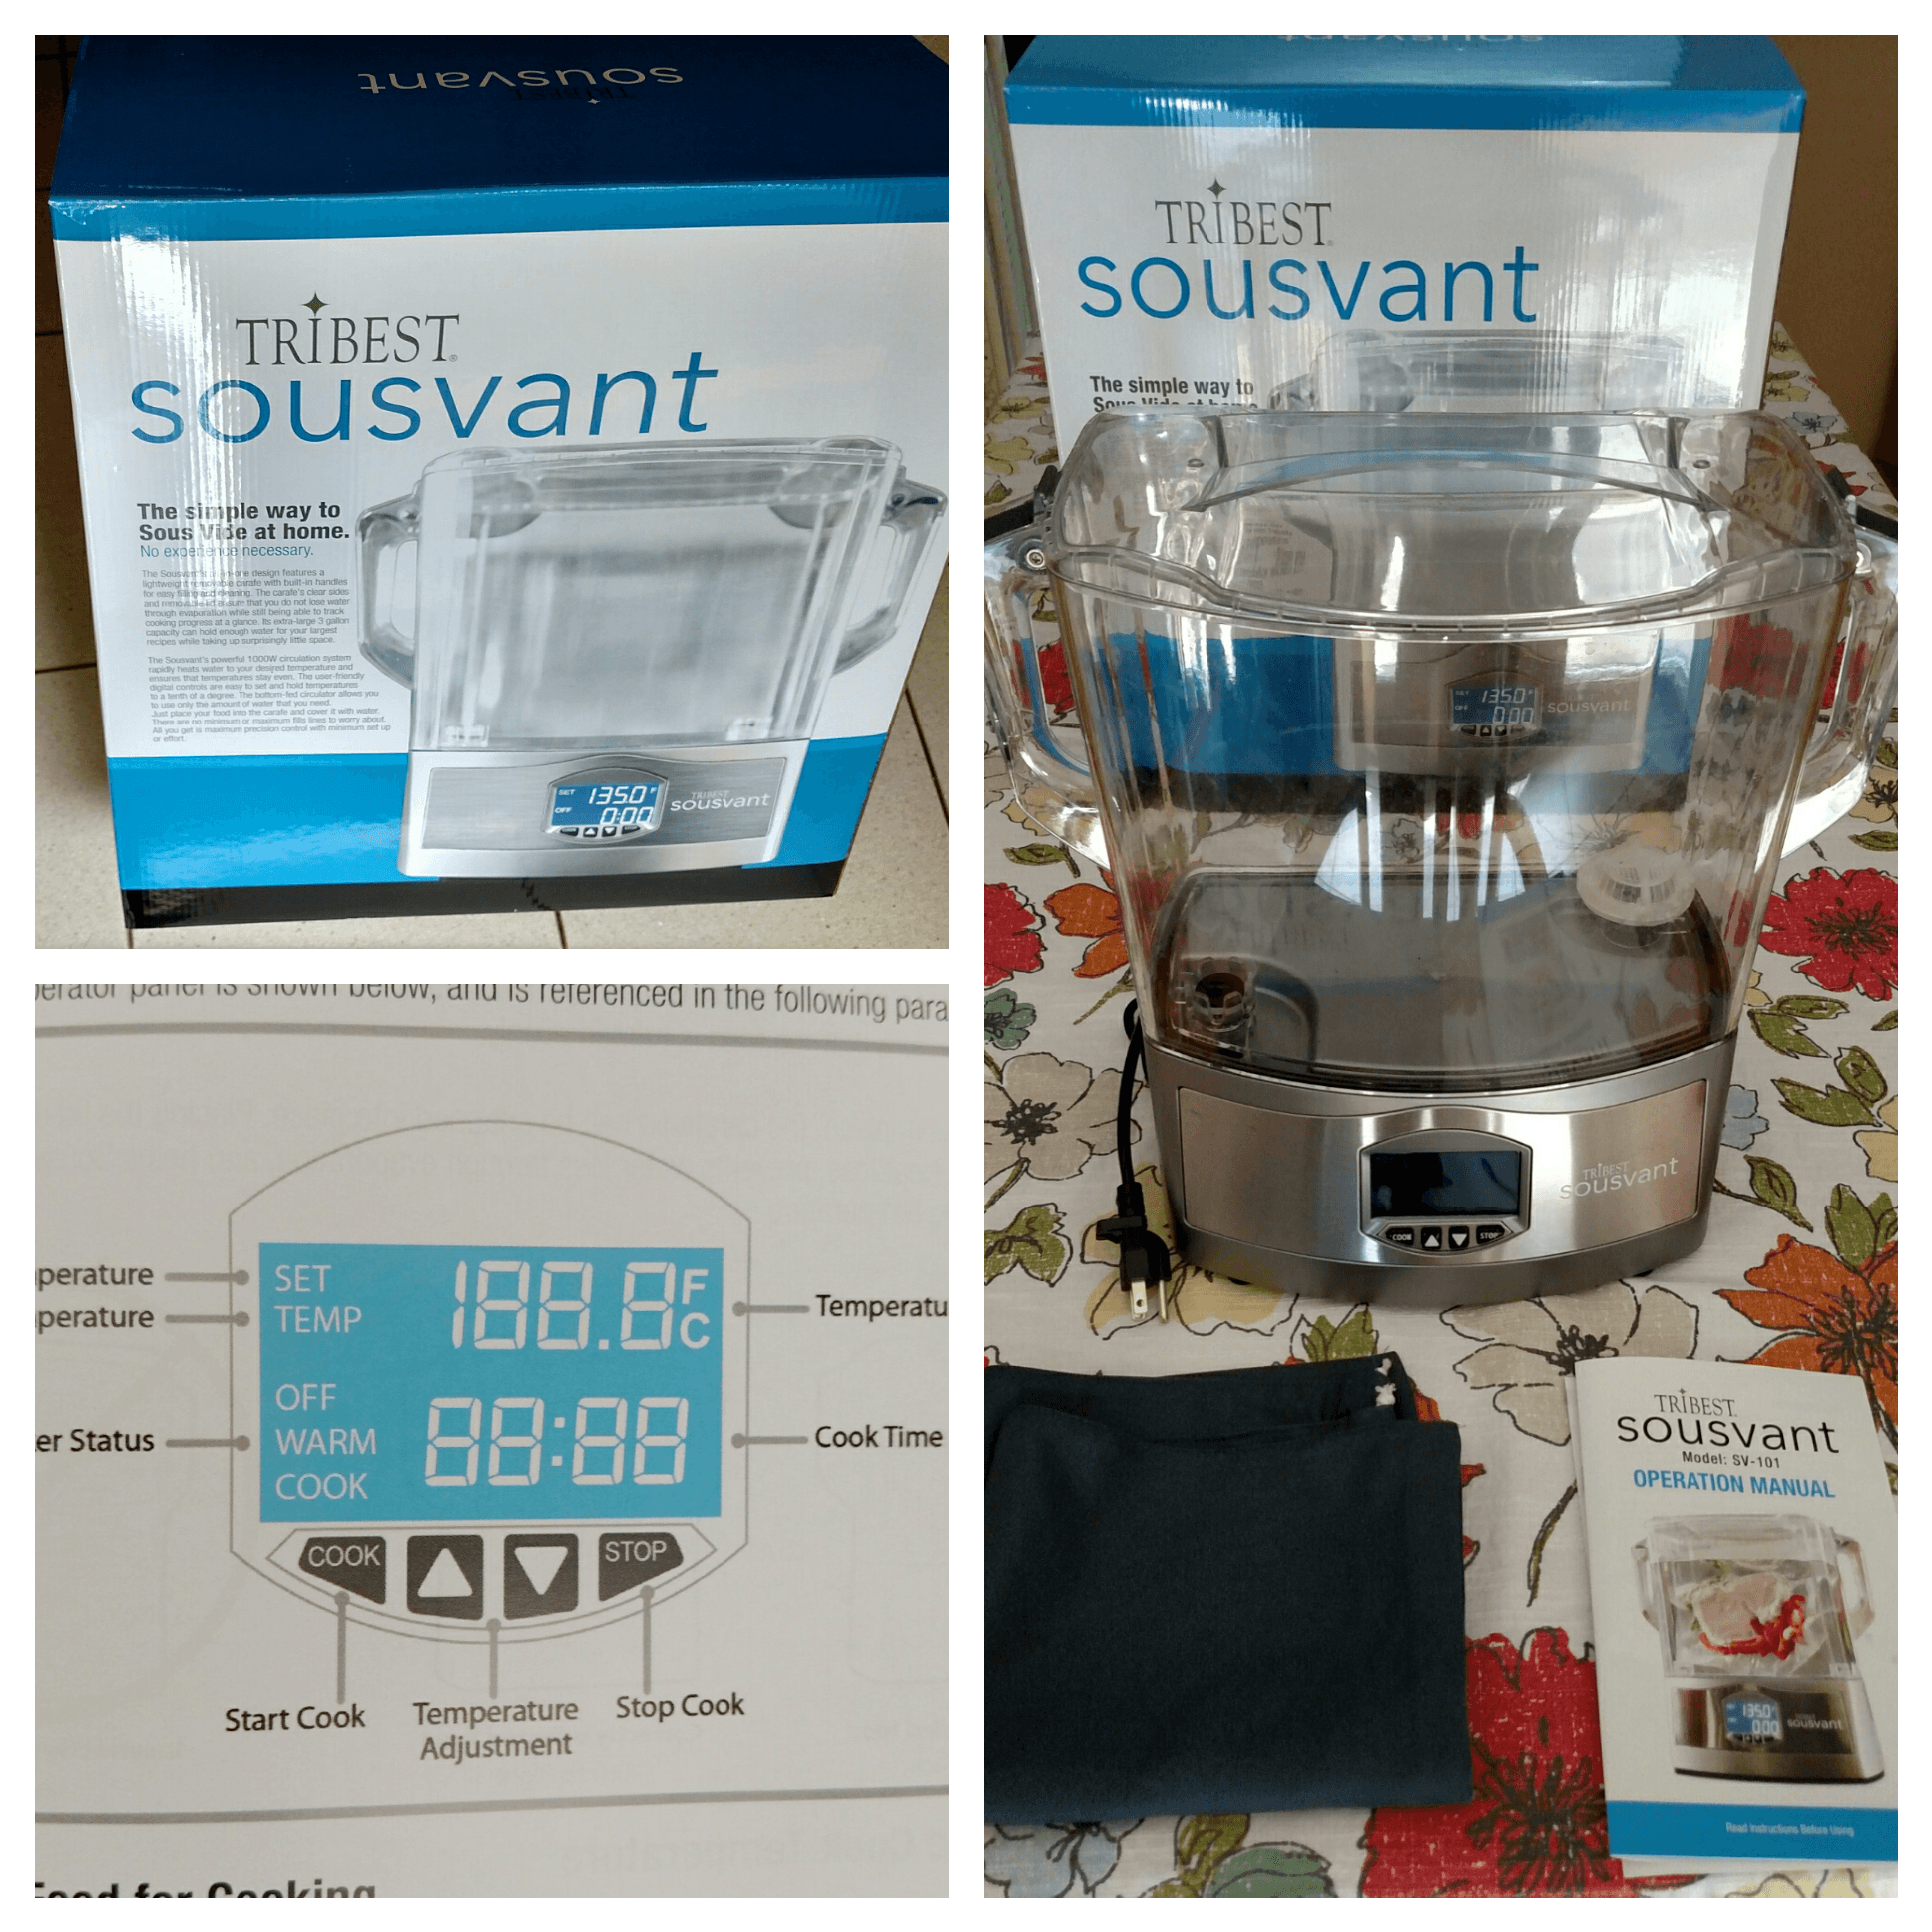 Unboxing the Sousvant